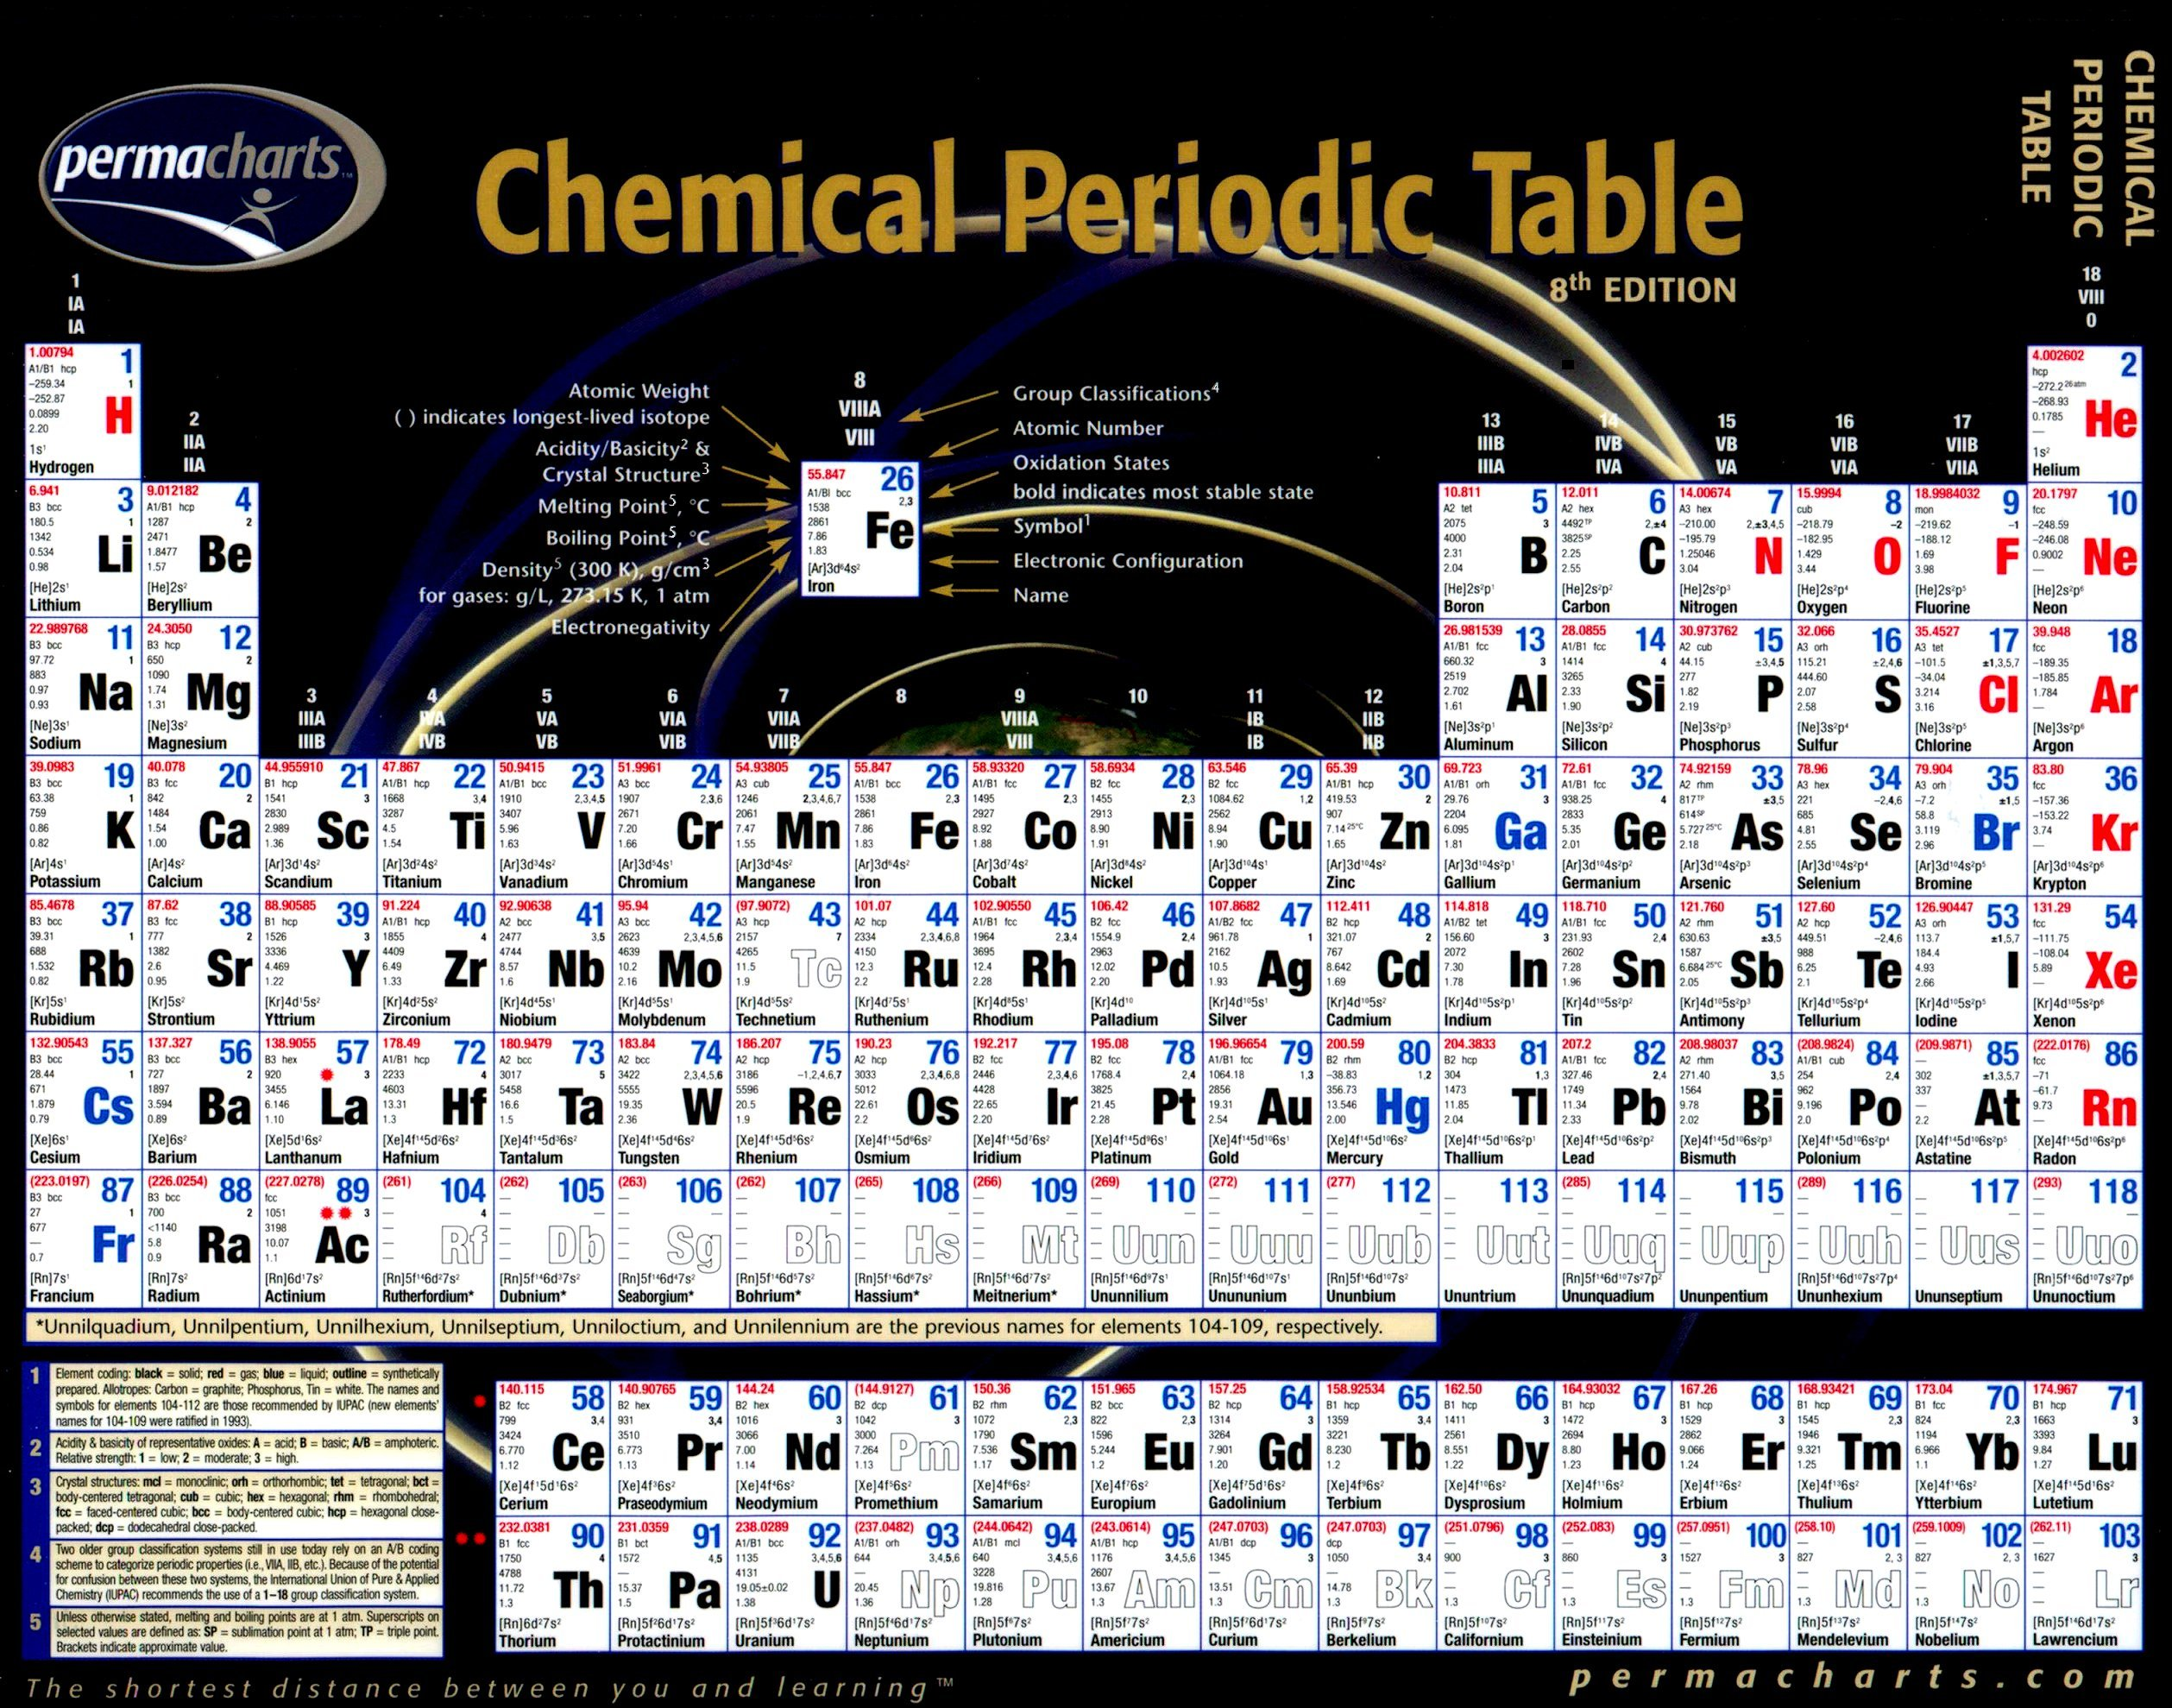 periodic table 1 - Periodic Table Of Elements With Atomic Mass And Valency